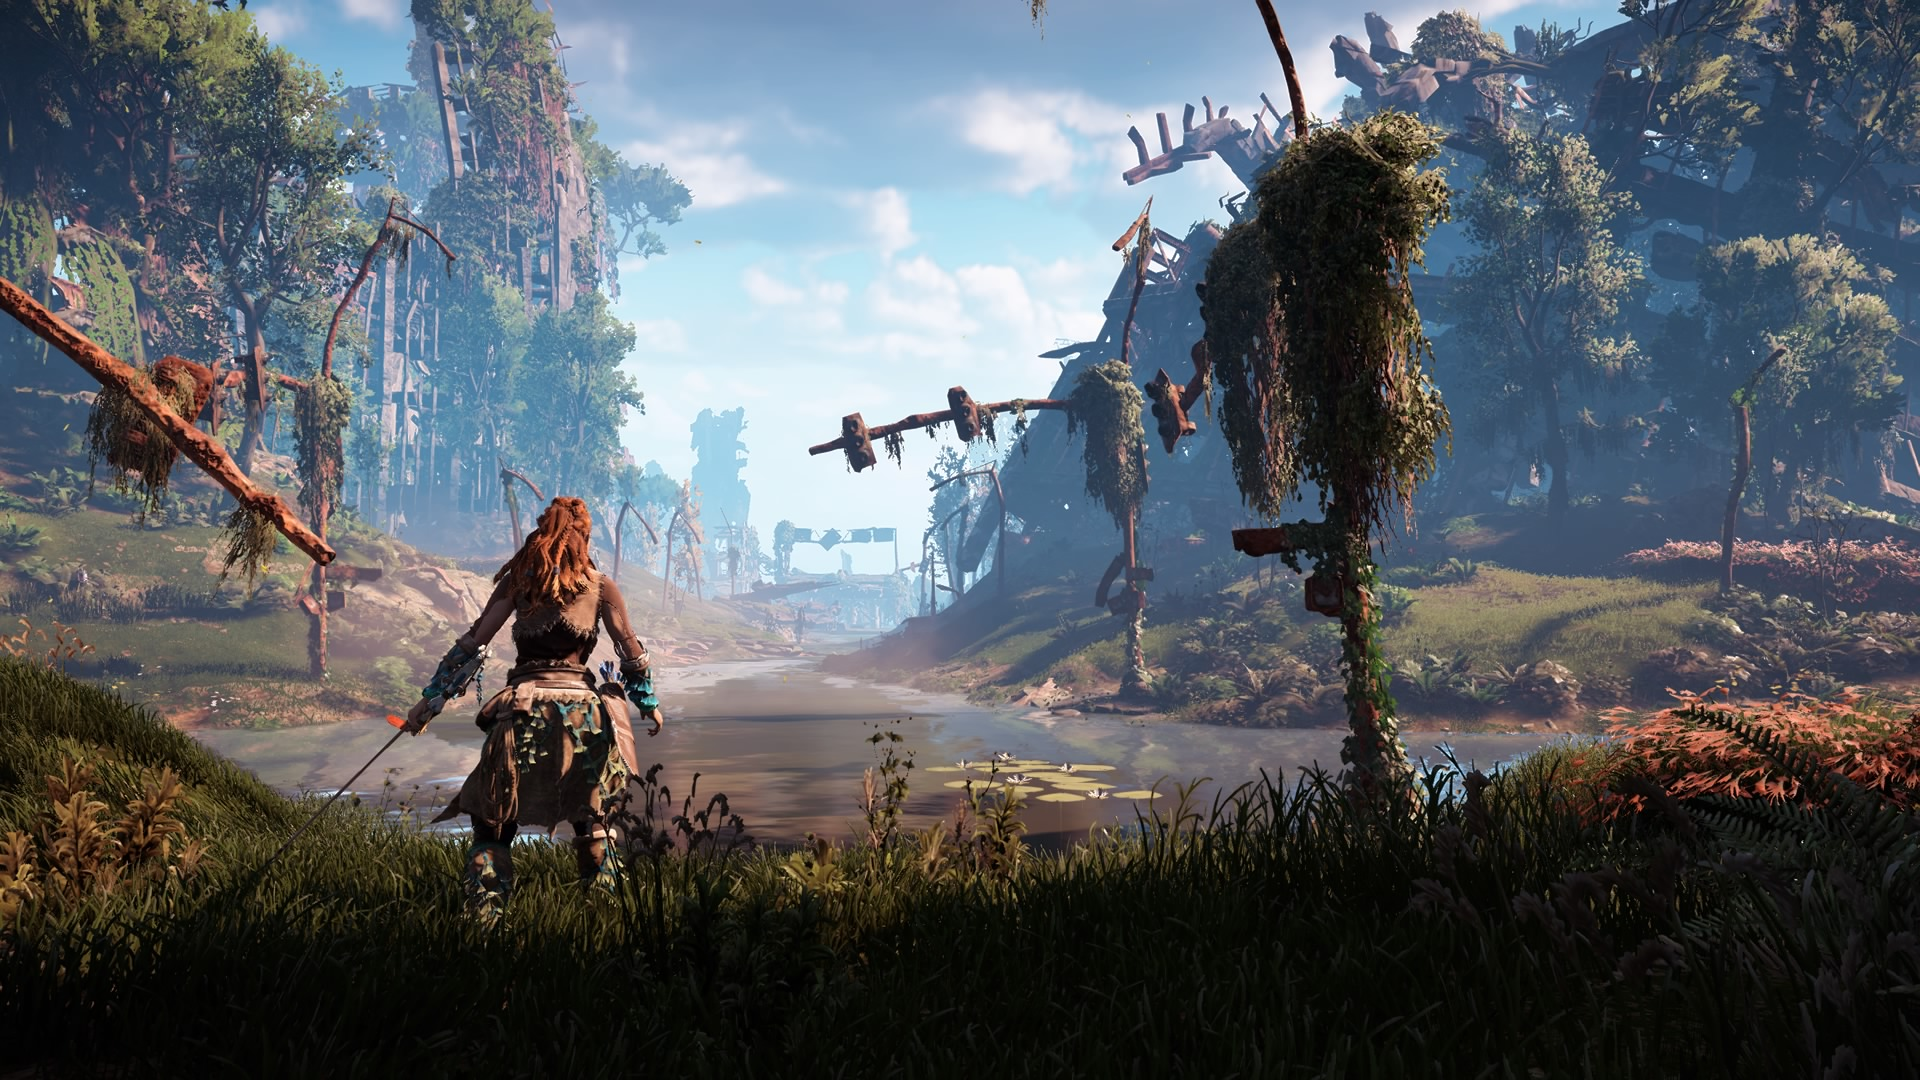 horizon_zero_dawn_20170308122304.jpg